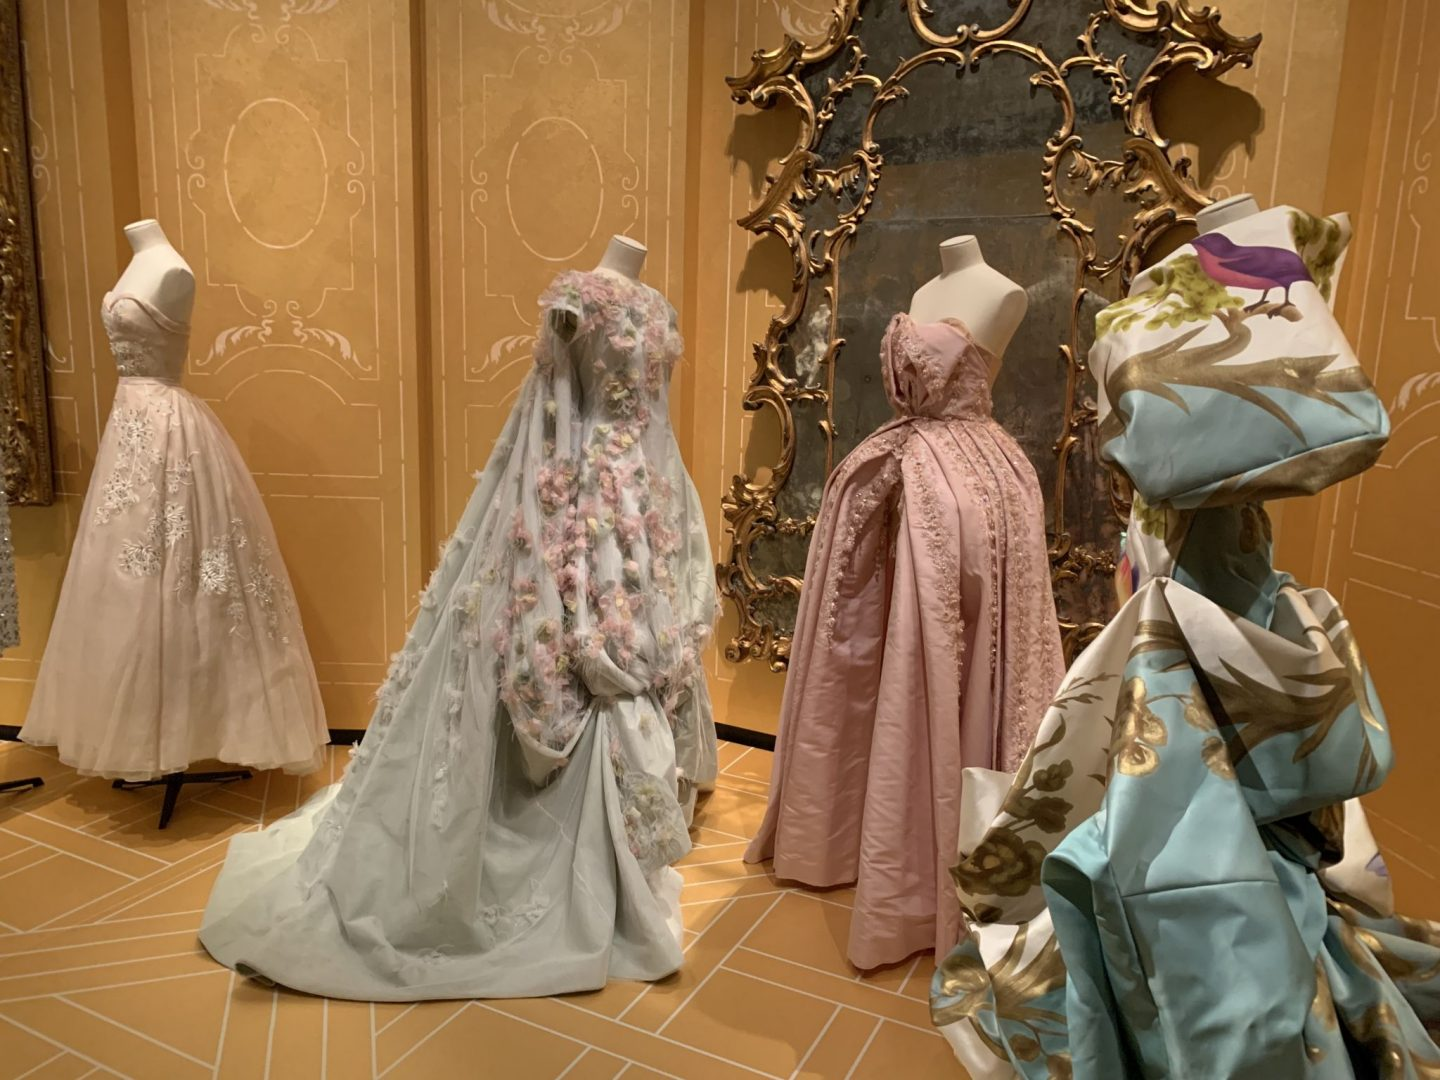 DIOR: From Paris to the World,  surveys 70 years of the House of Dior's enduring legacy and its global influence as seen at the Denver Art Museum in mile high city